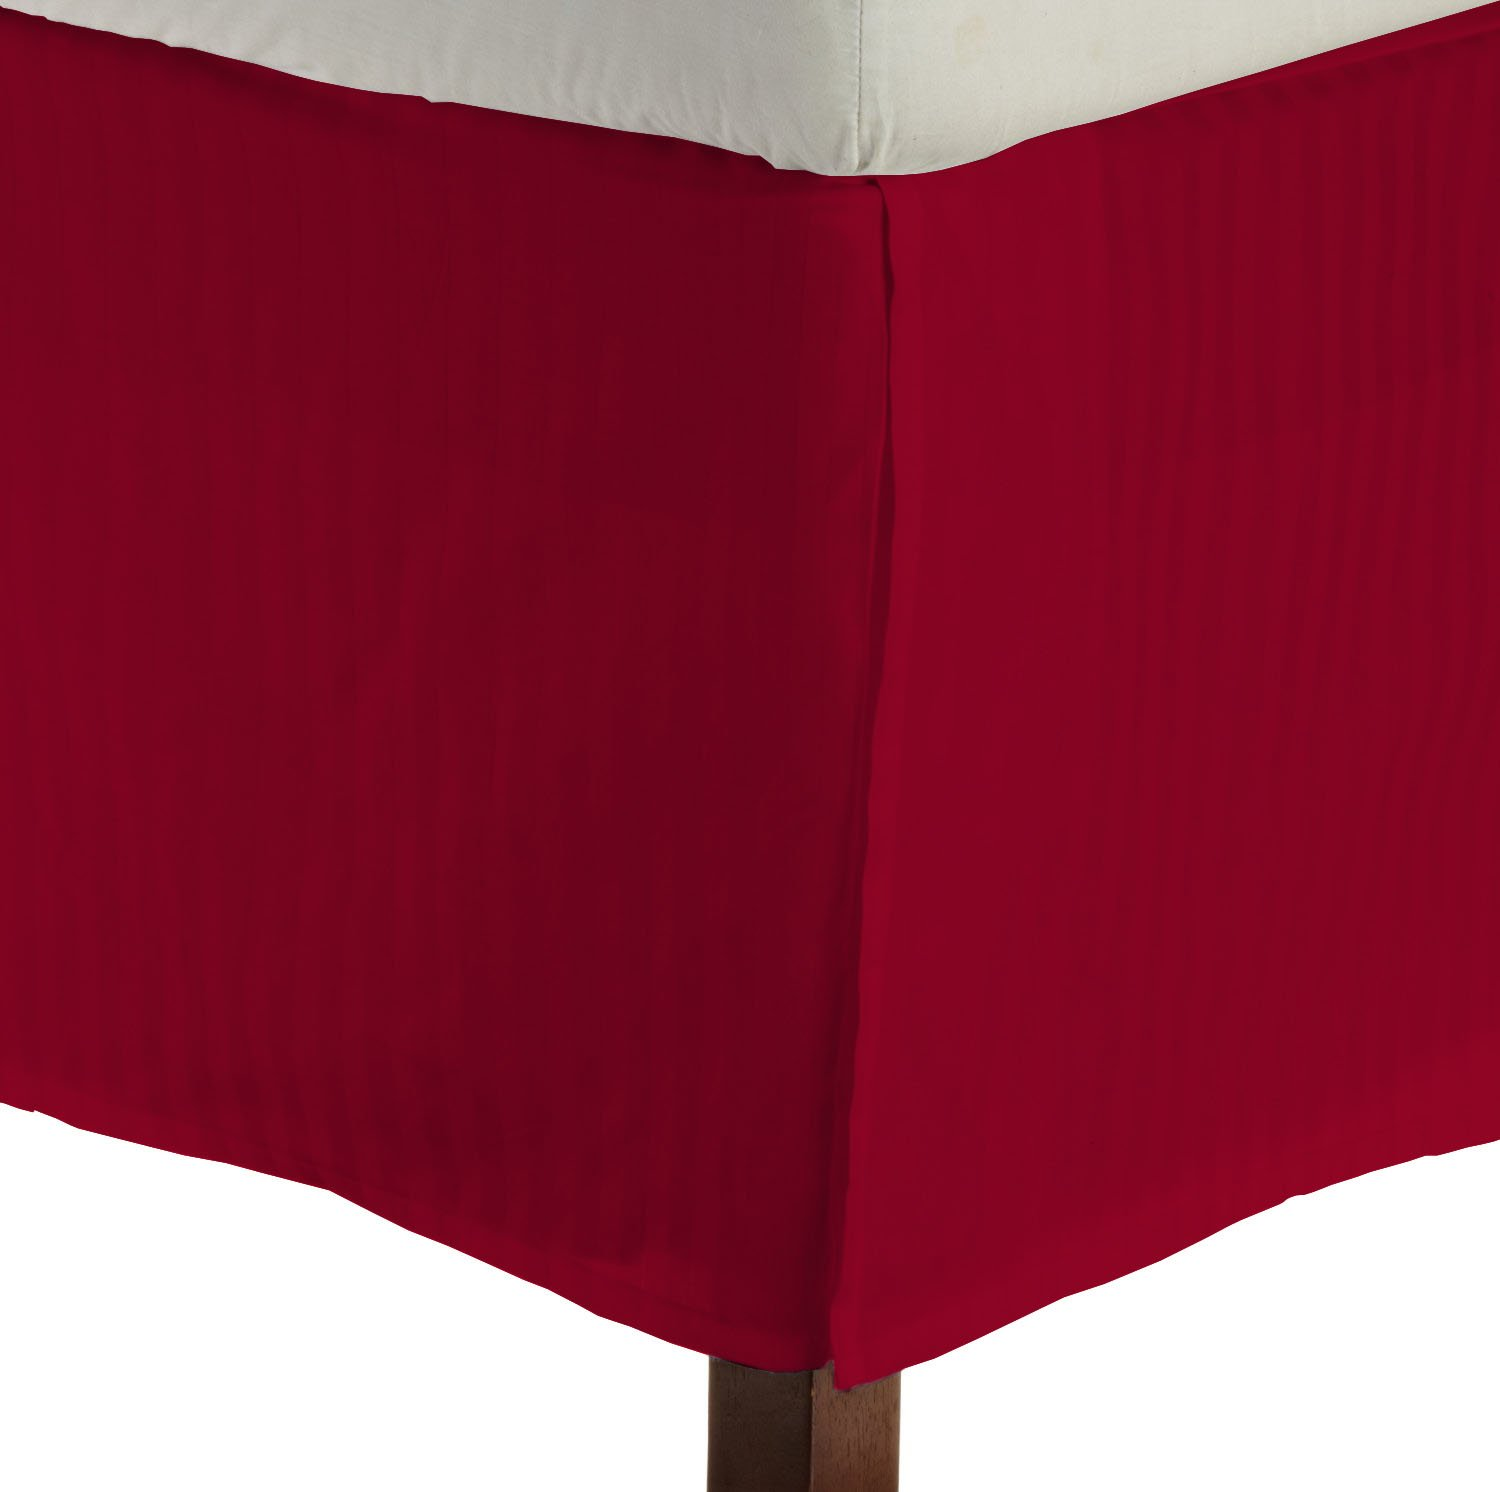 Cal-Queen Size 800 Thread Count 100% Egyptian cotton 16 Deep Pocket Tailored Bedskirt Striped -Blood Red Created By Pearl Bedding new summer beach top quality plus size sexy women one piece swimwear floral